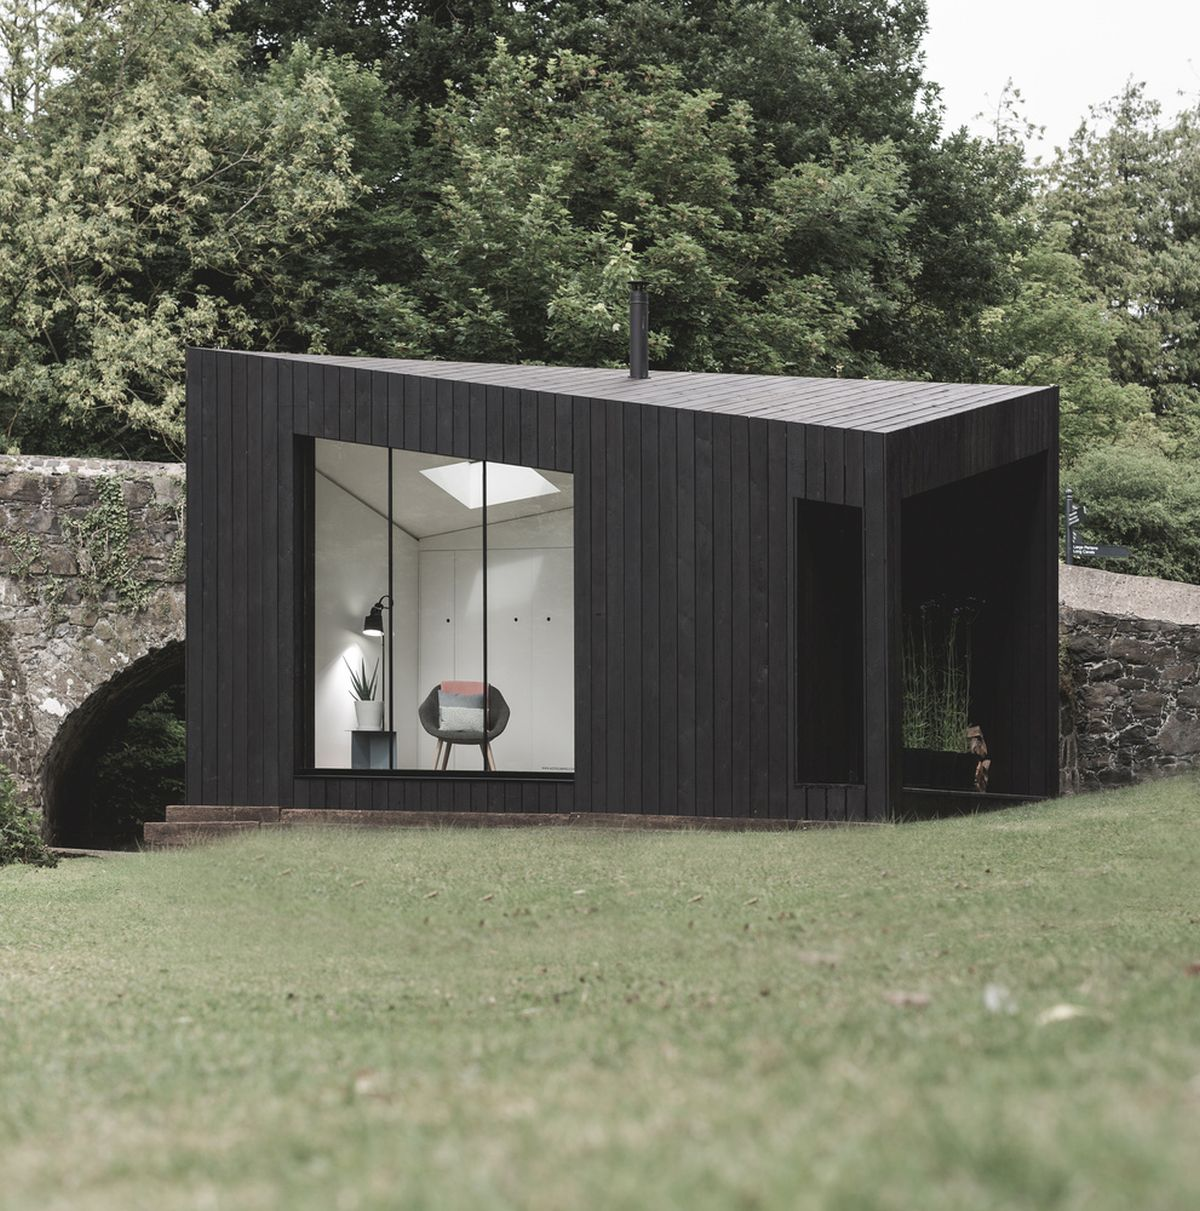 The minimalist and sculptural design gives the cabins a distinctive contemporary appearance